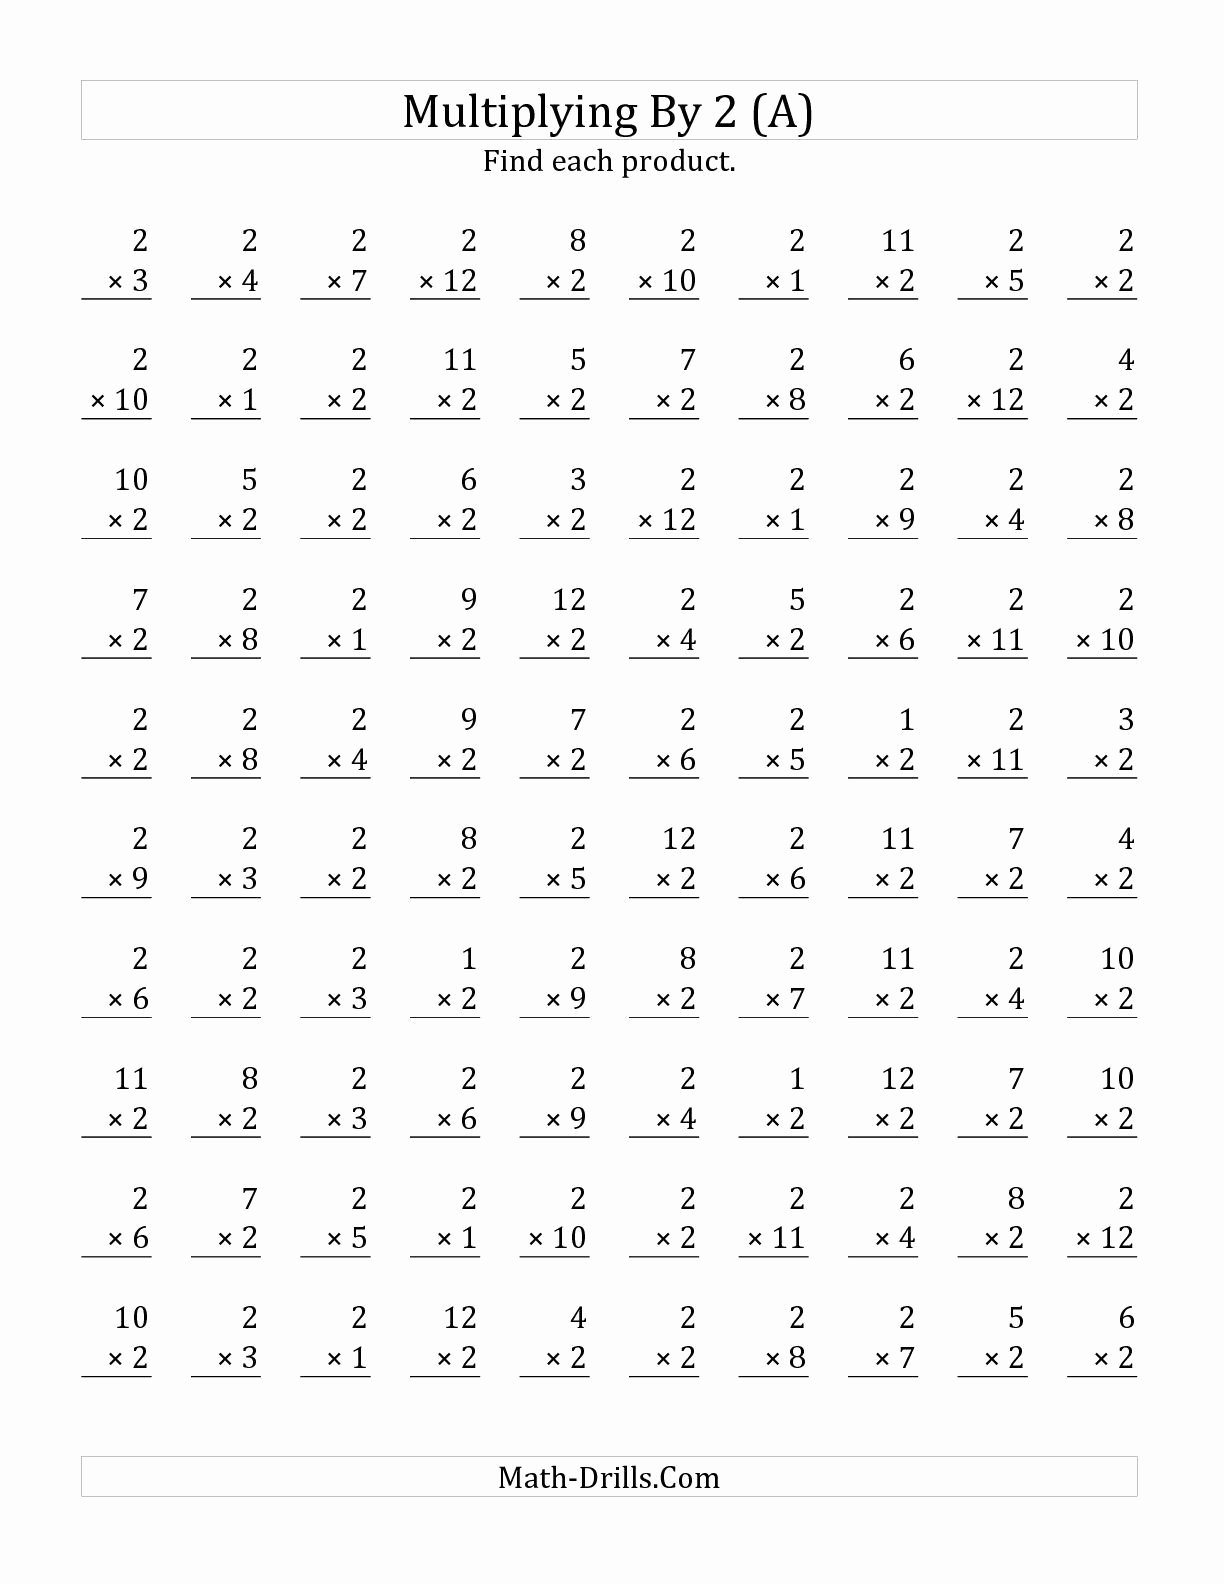 Math Drill Multiplication Worksheets Unique the Multiplying 1 to 12 by 2 A Math Worksheet From the